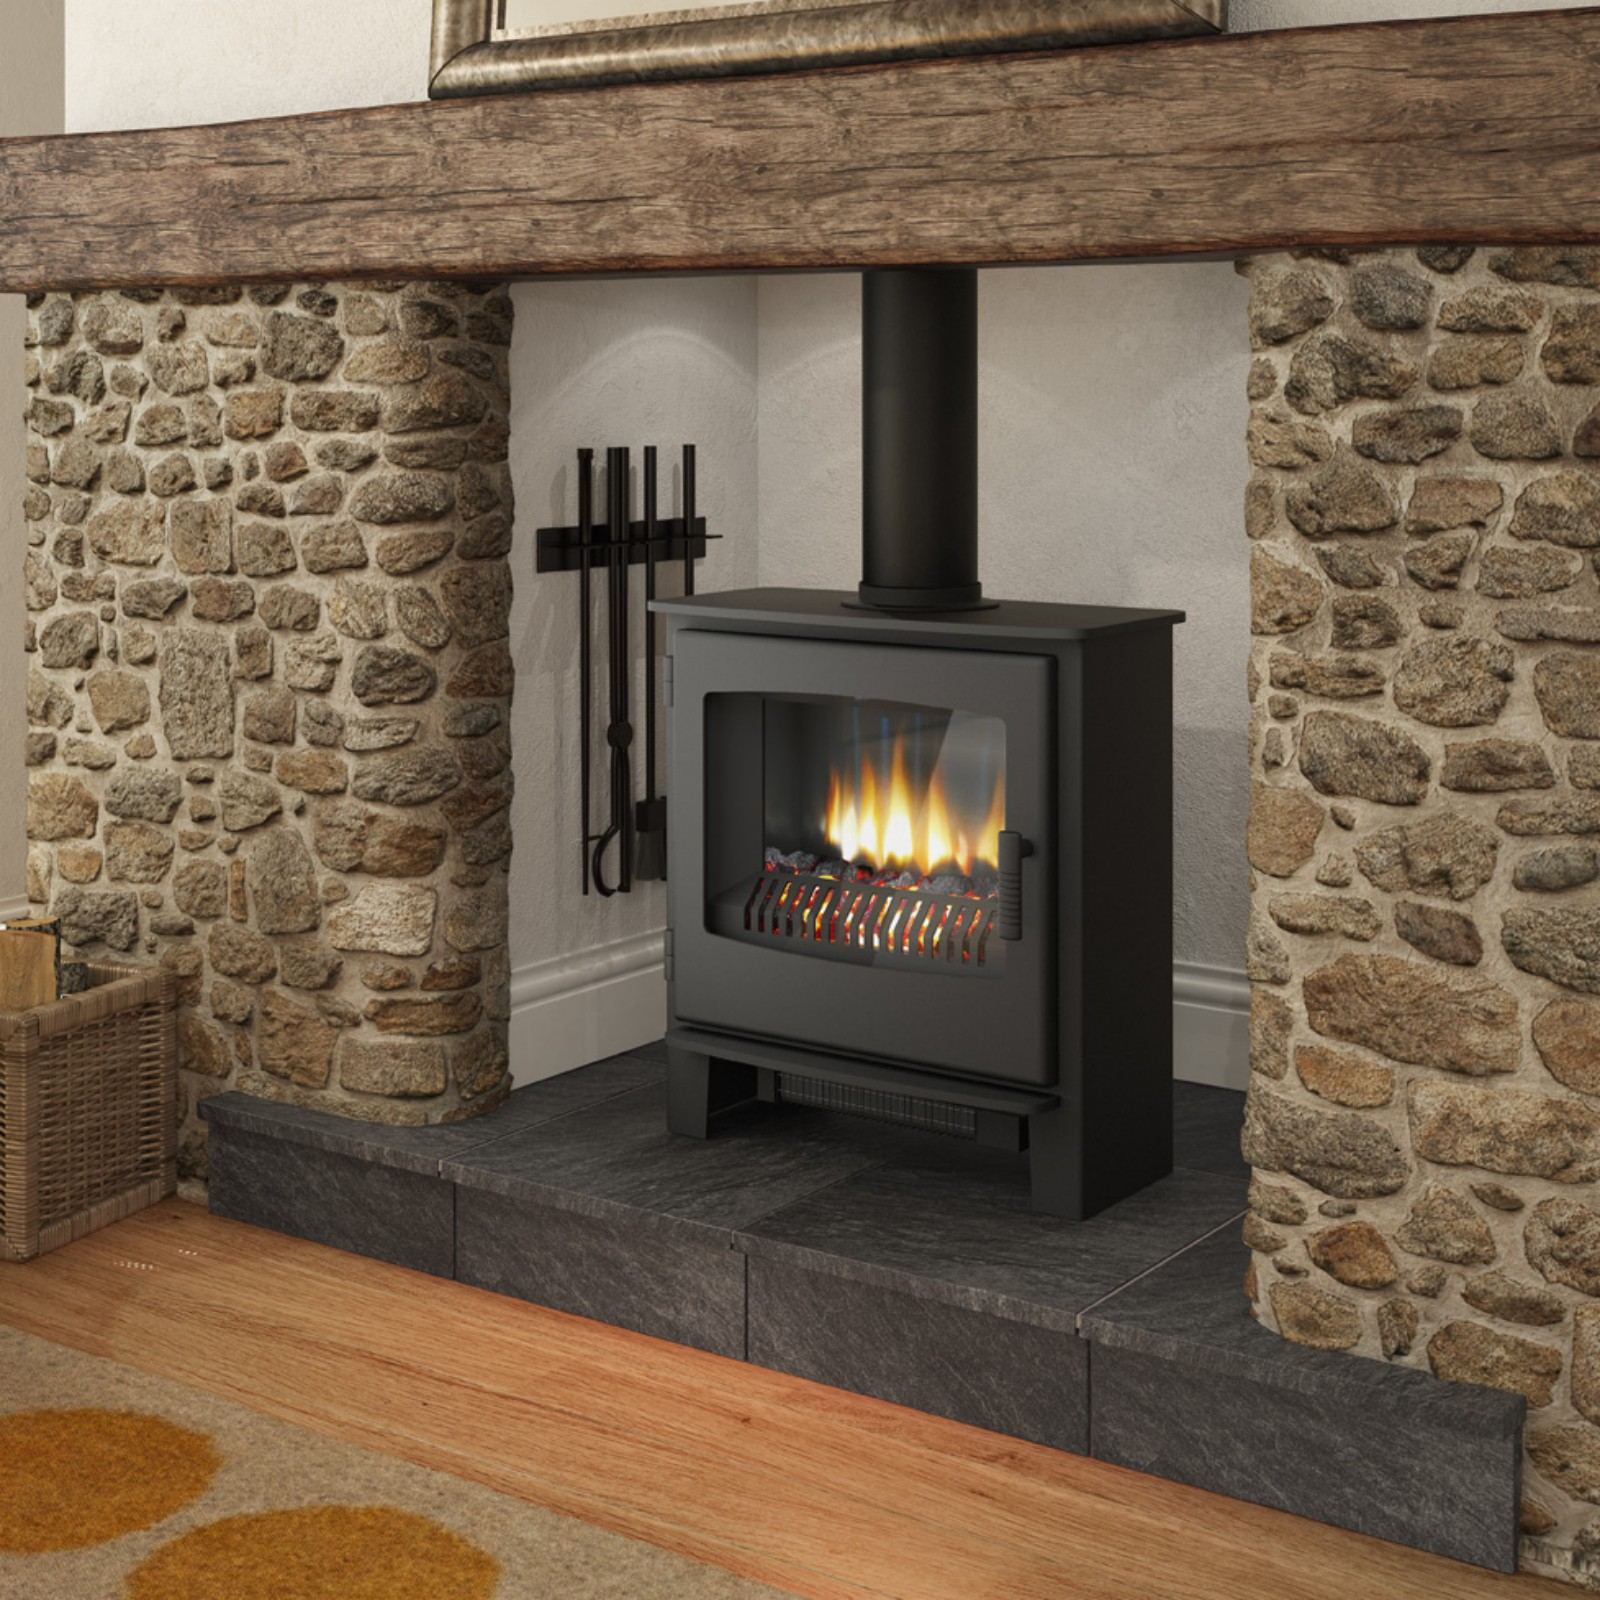 CALL US TODAY OR SPEAK TO US THROUGH LIVE CHAT FOR SOME AMAZING DEALS ON FIRES AND STOVES - WWW.FIREPLACES4LIFE.CO.UK  product